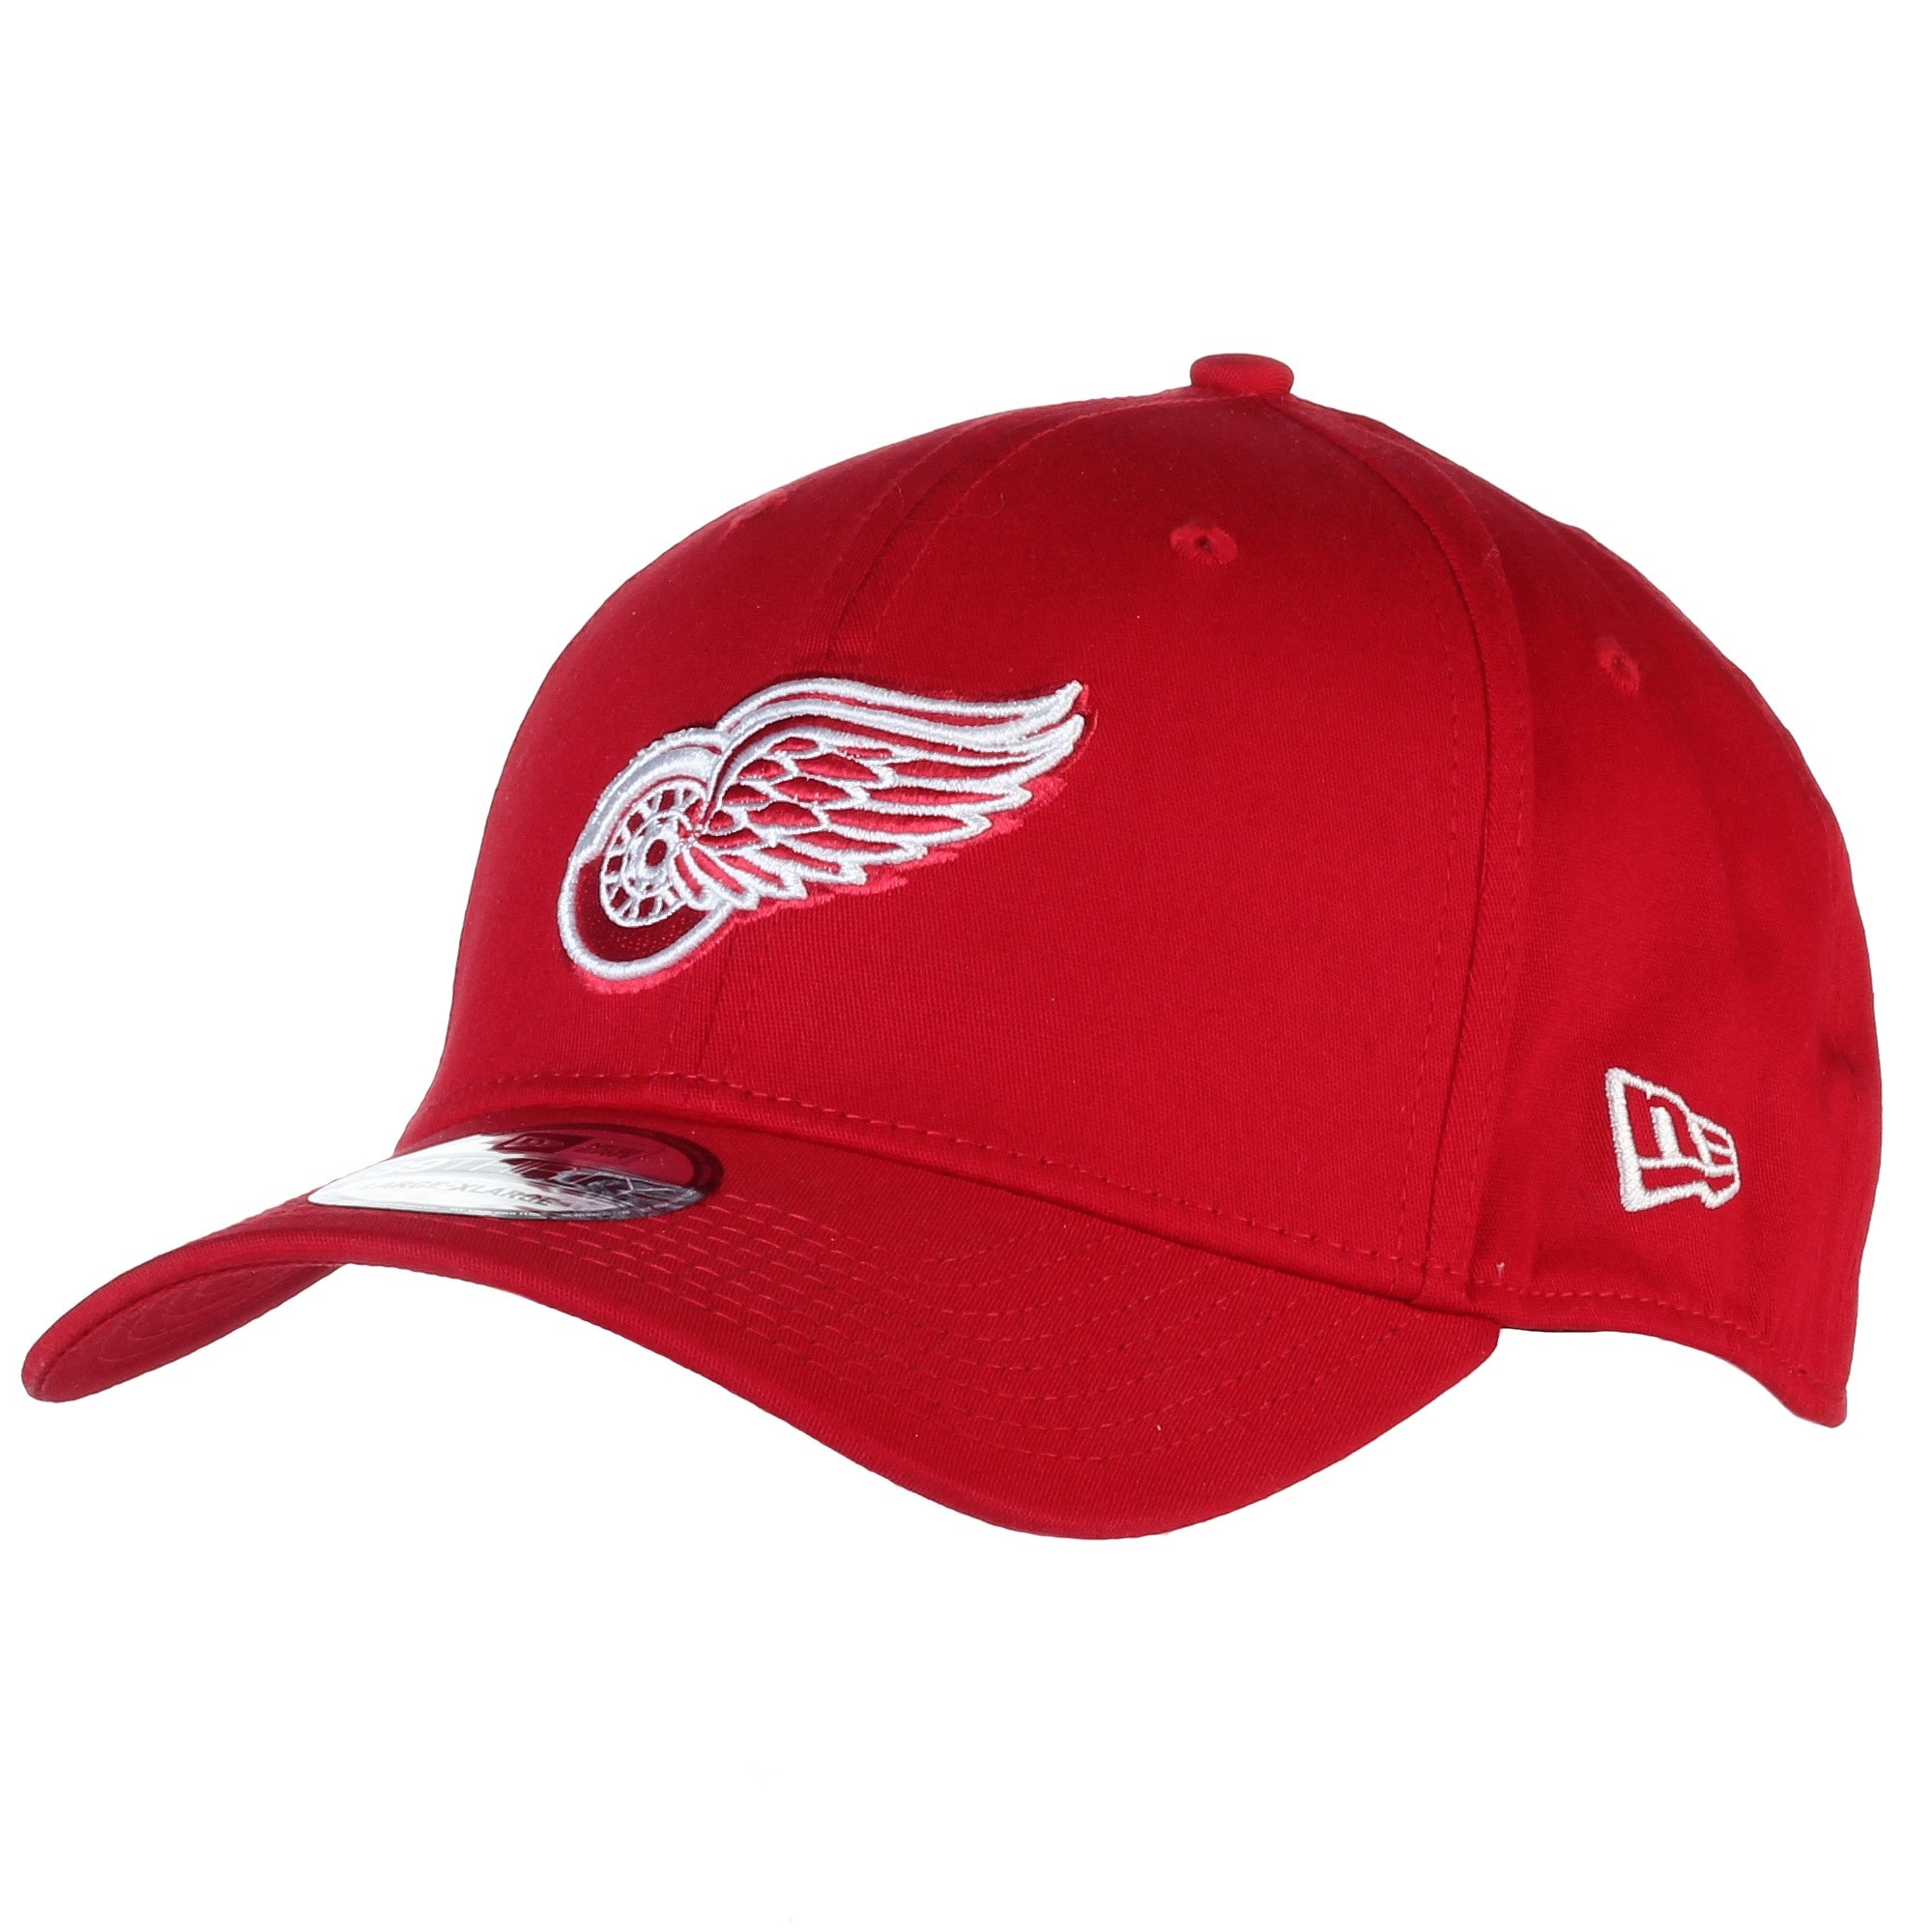 NEW ERA Detroit Red Wings Vasaras Cepure